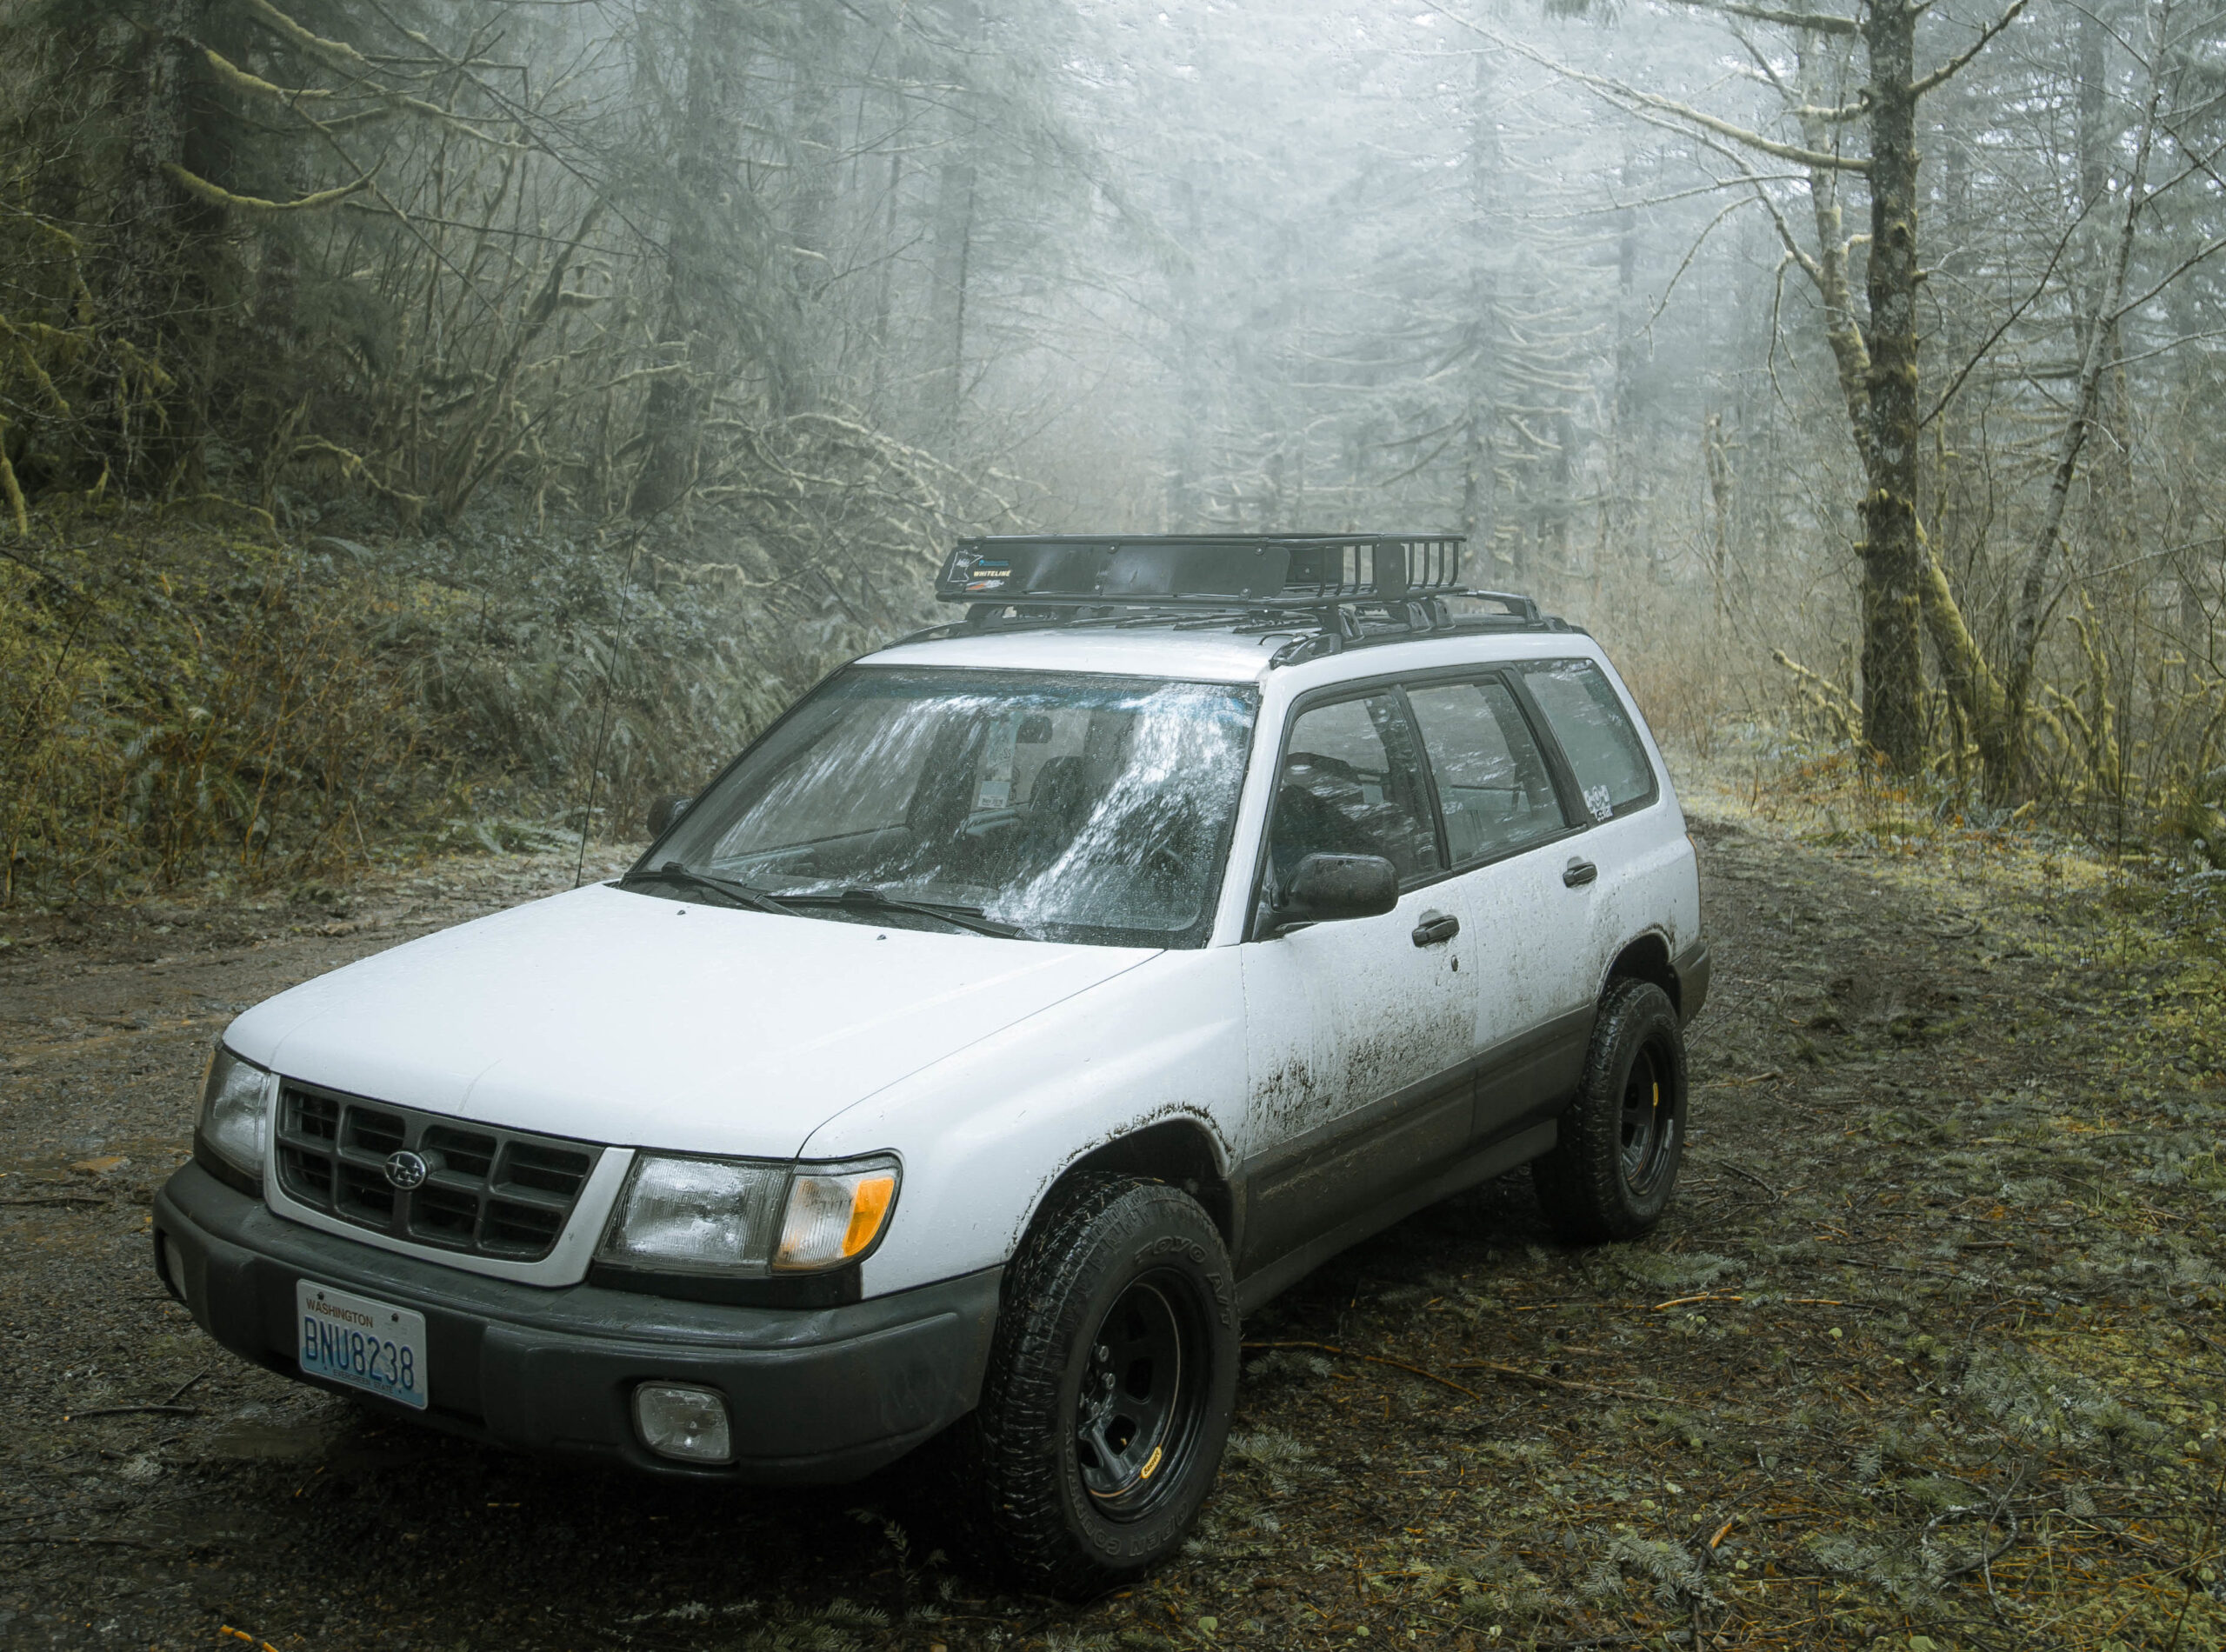 Can A 2000 Subaru Forester Go Off-Road? | Here's What You'll Need